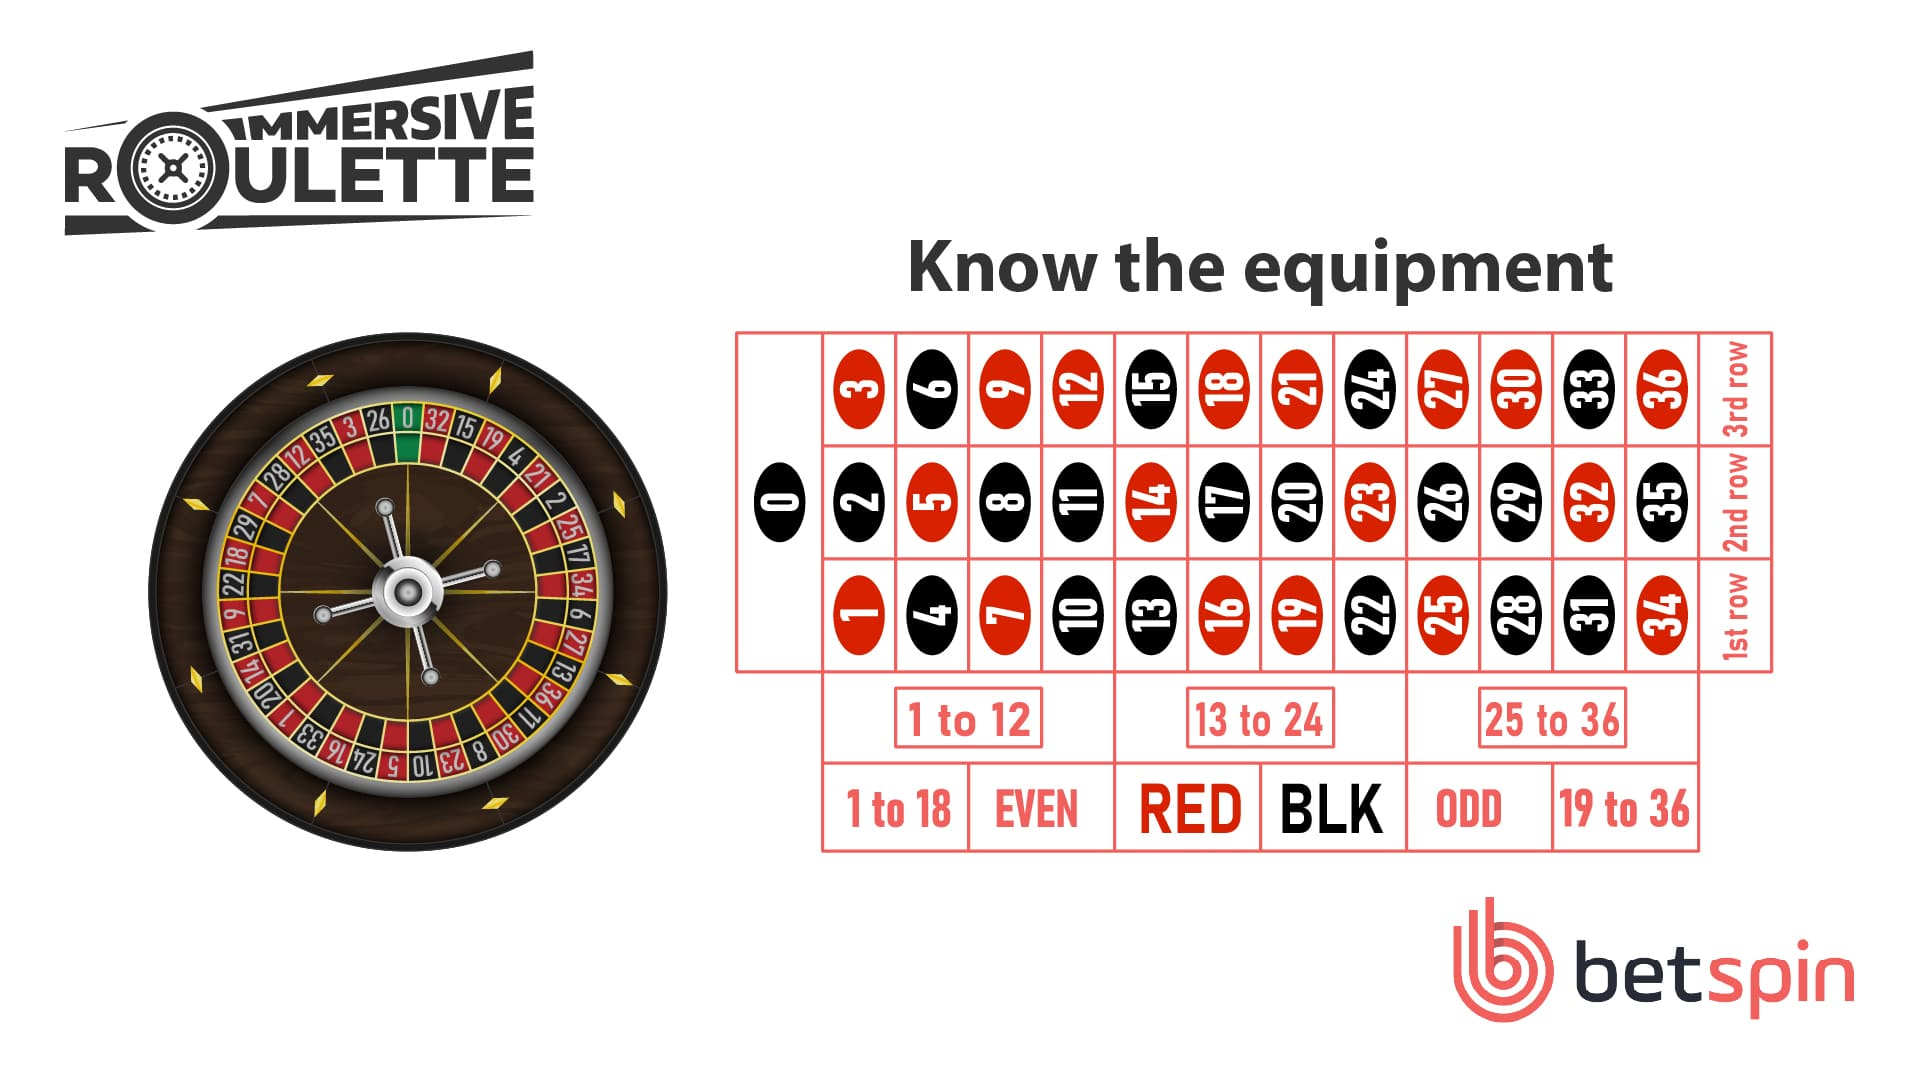 Immersive Roulette Step 1